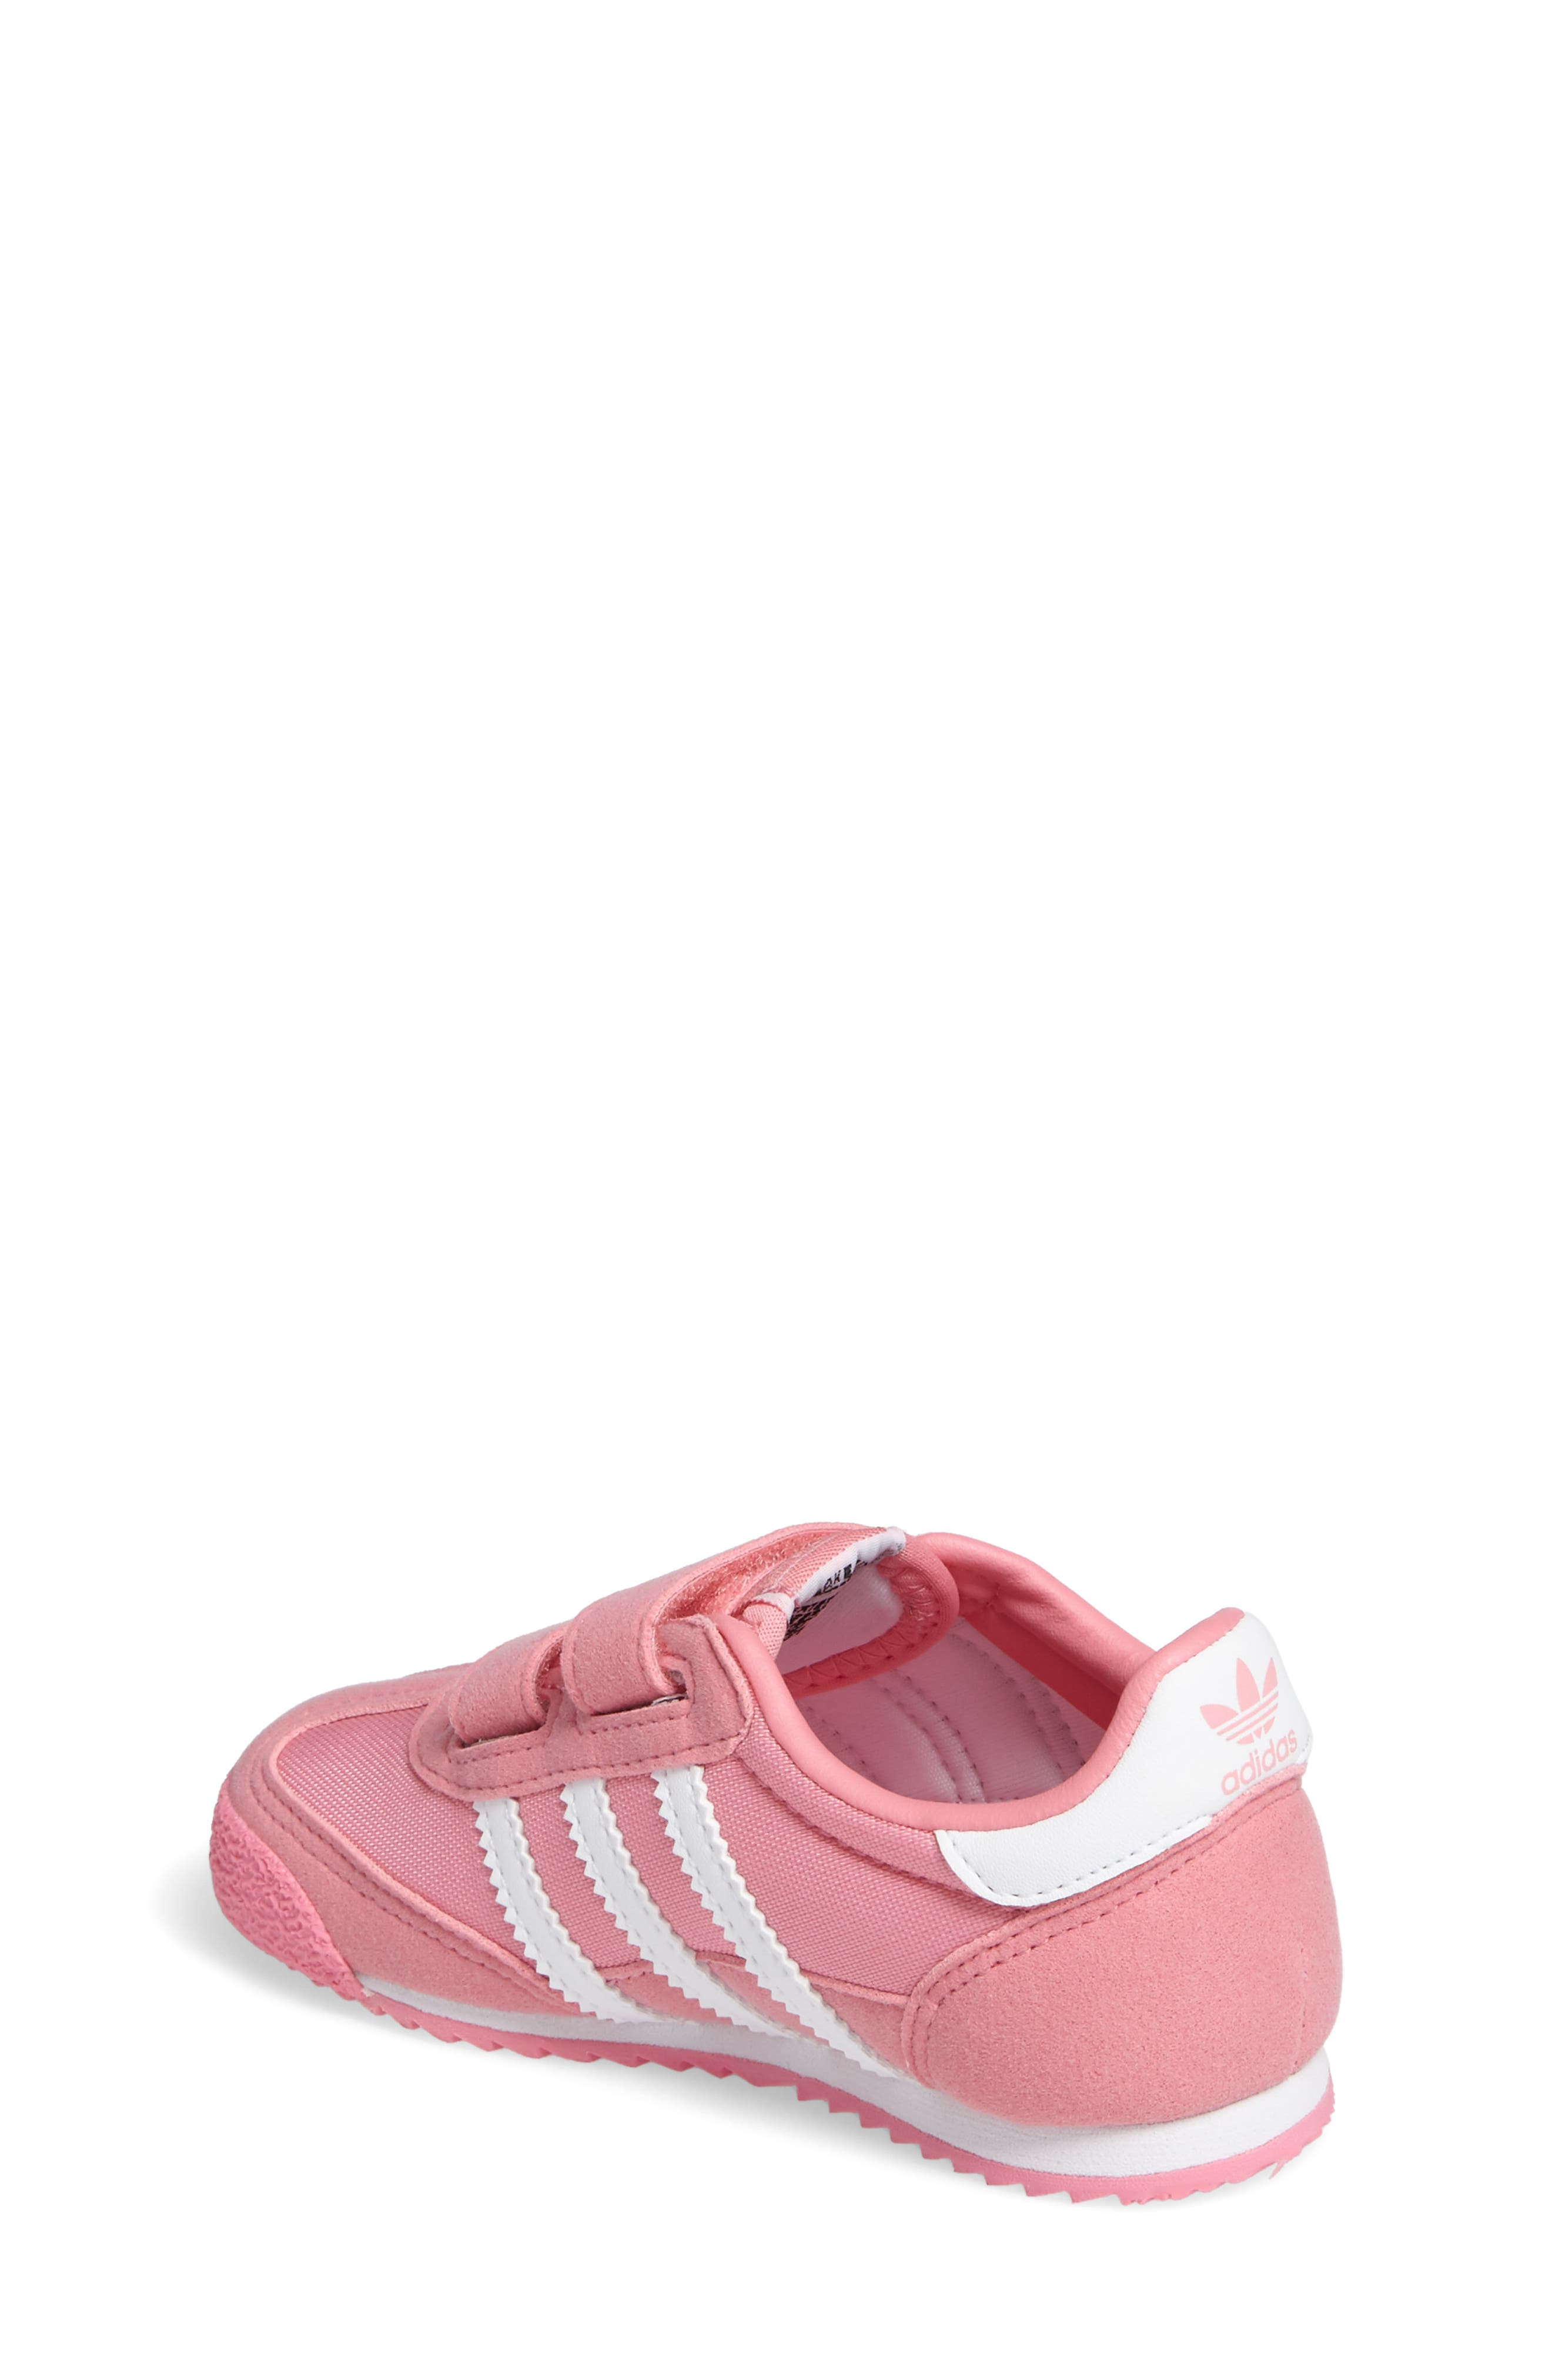 Dragon OG CF Athletic Shoe,                             Alternate thumbnail 2, color,                             Easy Pink/ White